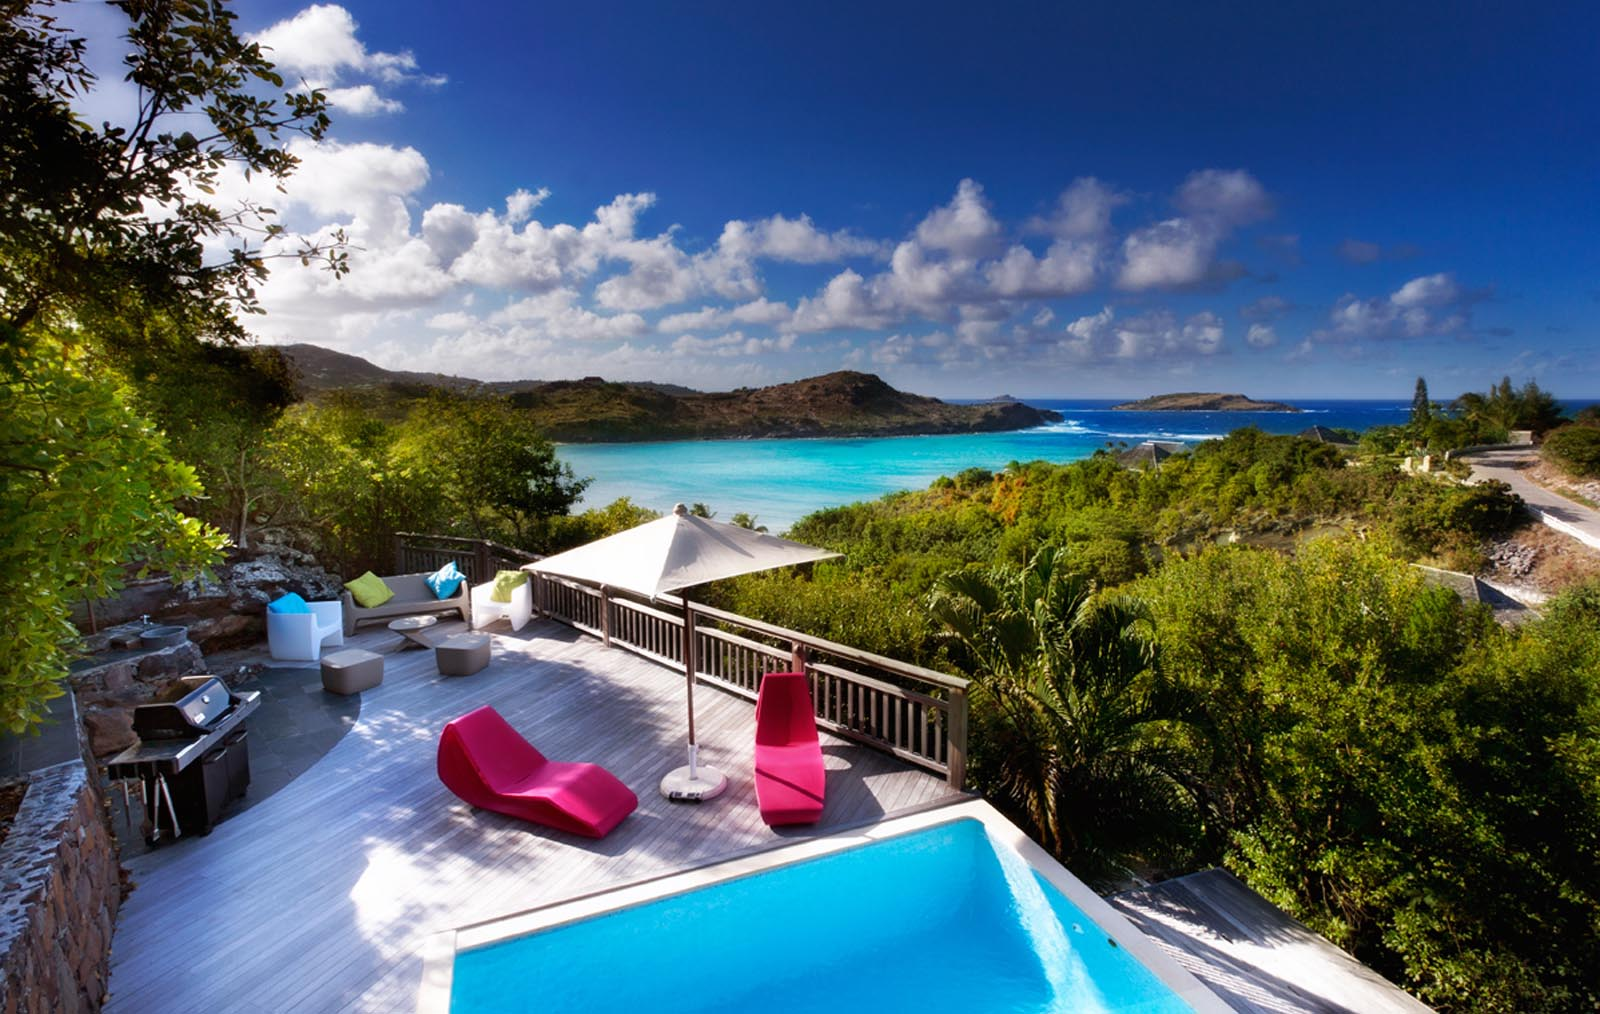 Small lagoon petiti cul de sac st bartsa two bedroom villa with stunning views of the caribbean sea